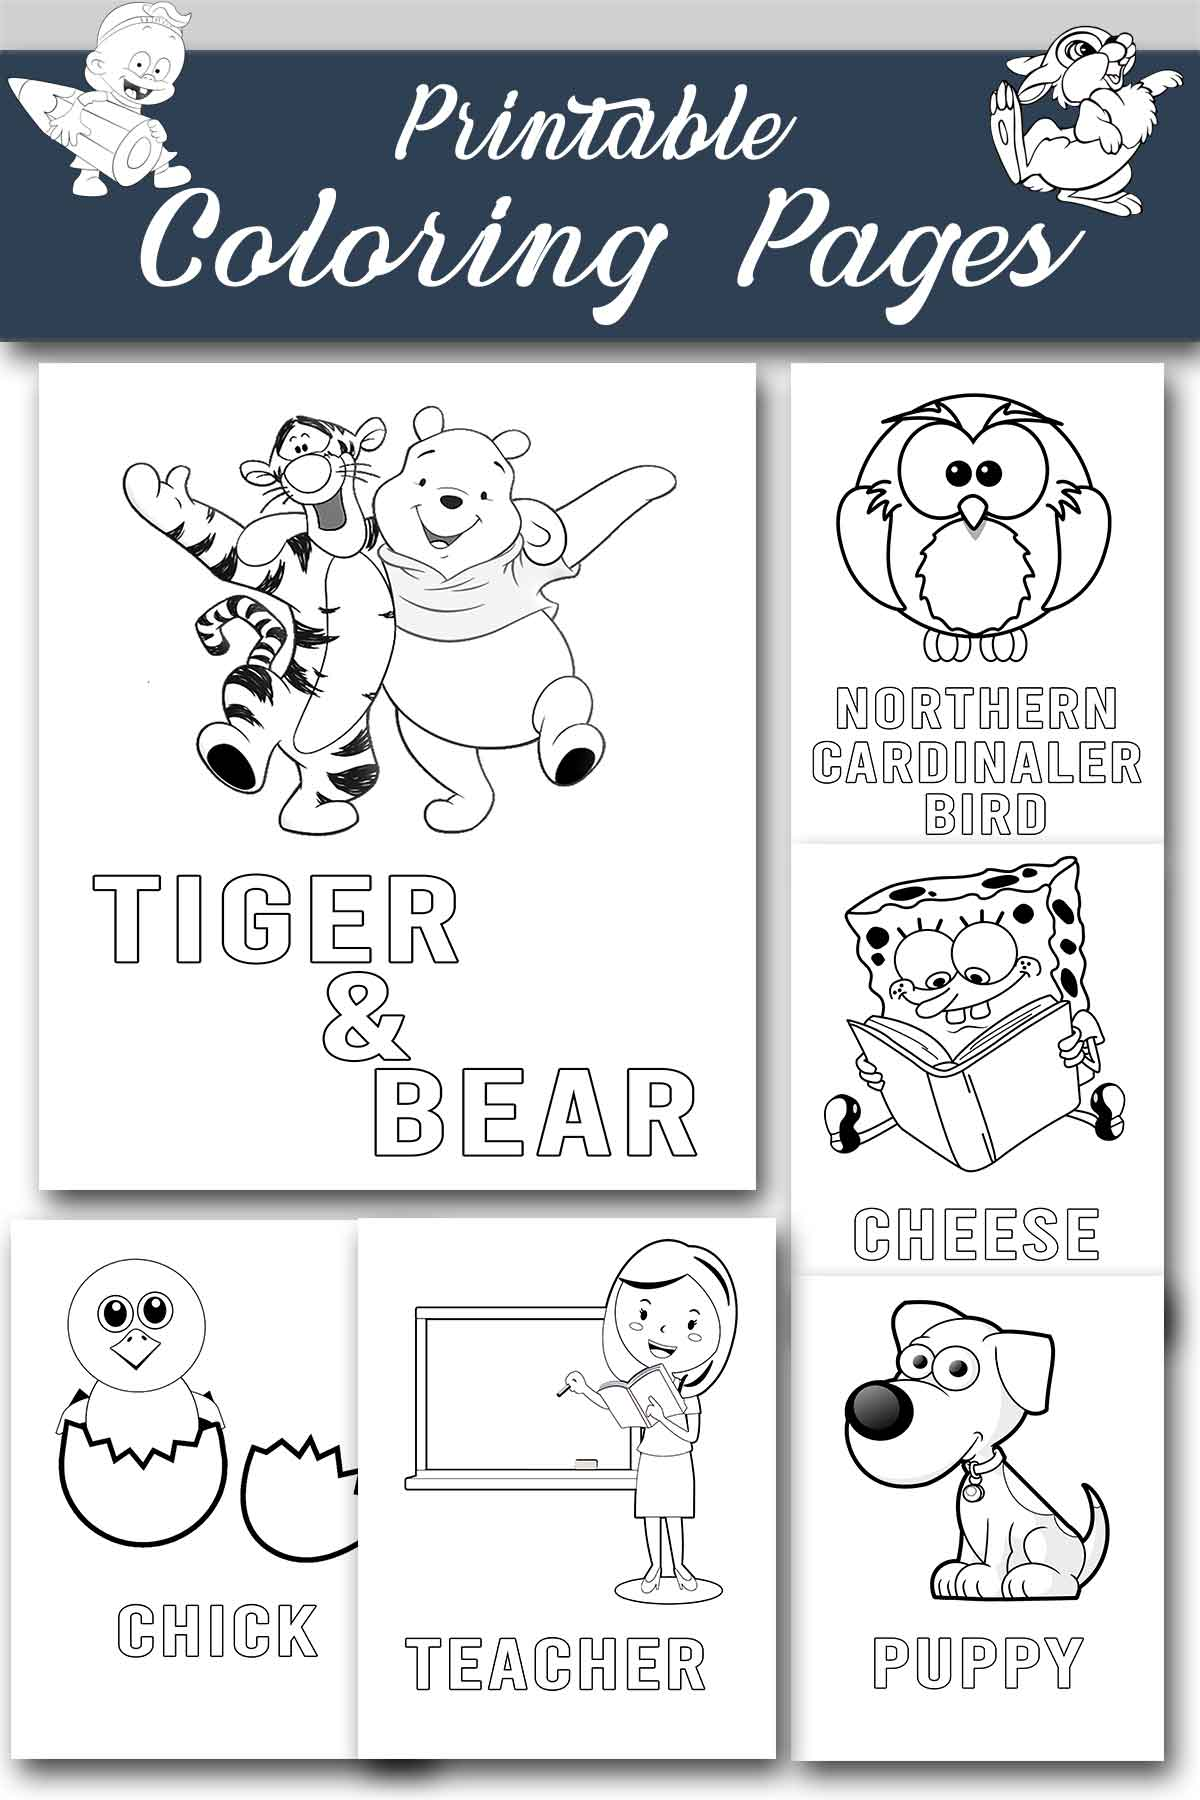 coloring pages for kids - coloring pages printable - coloring sheets